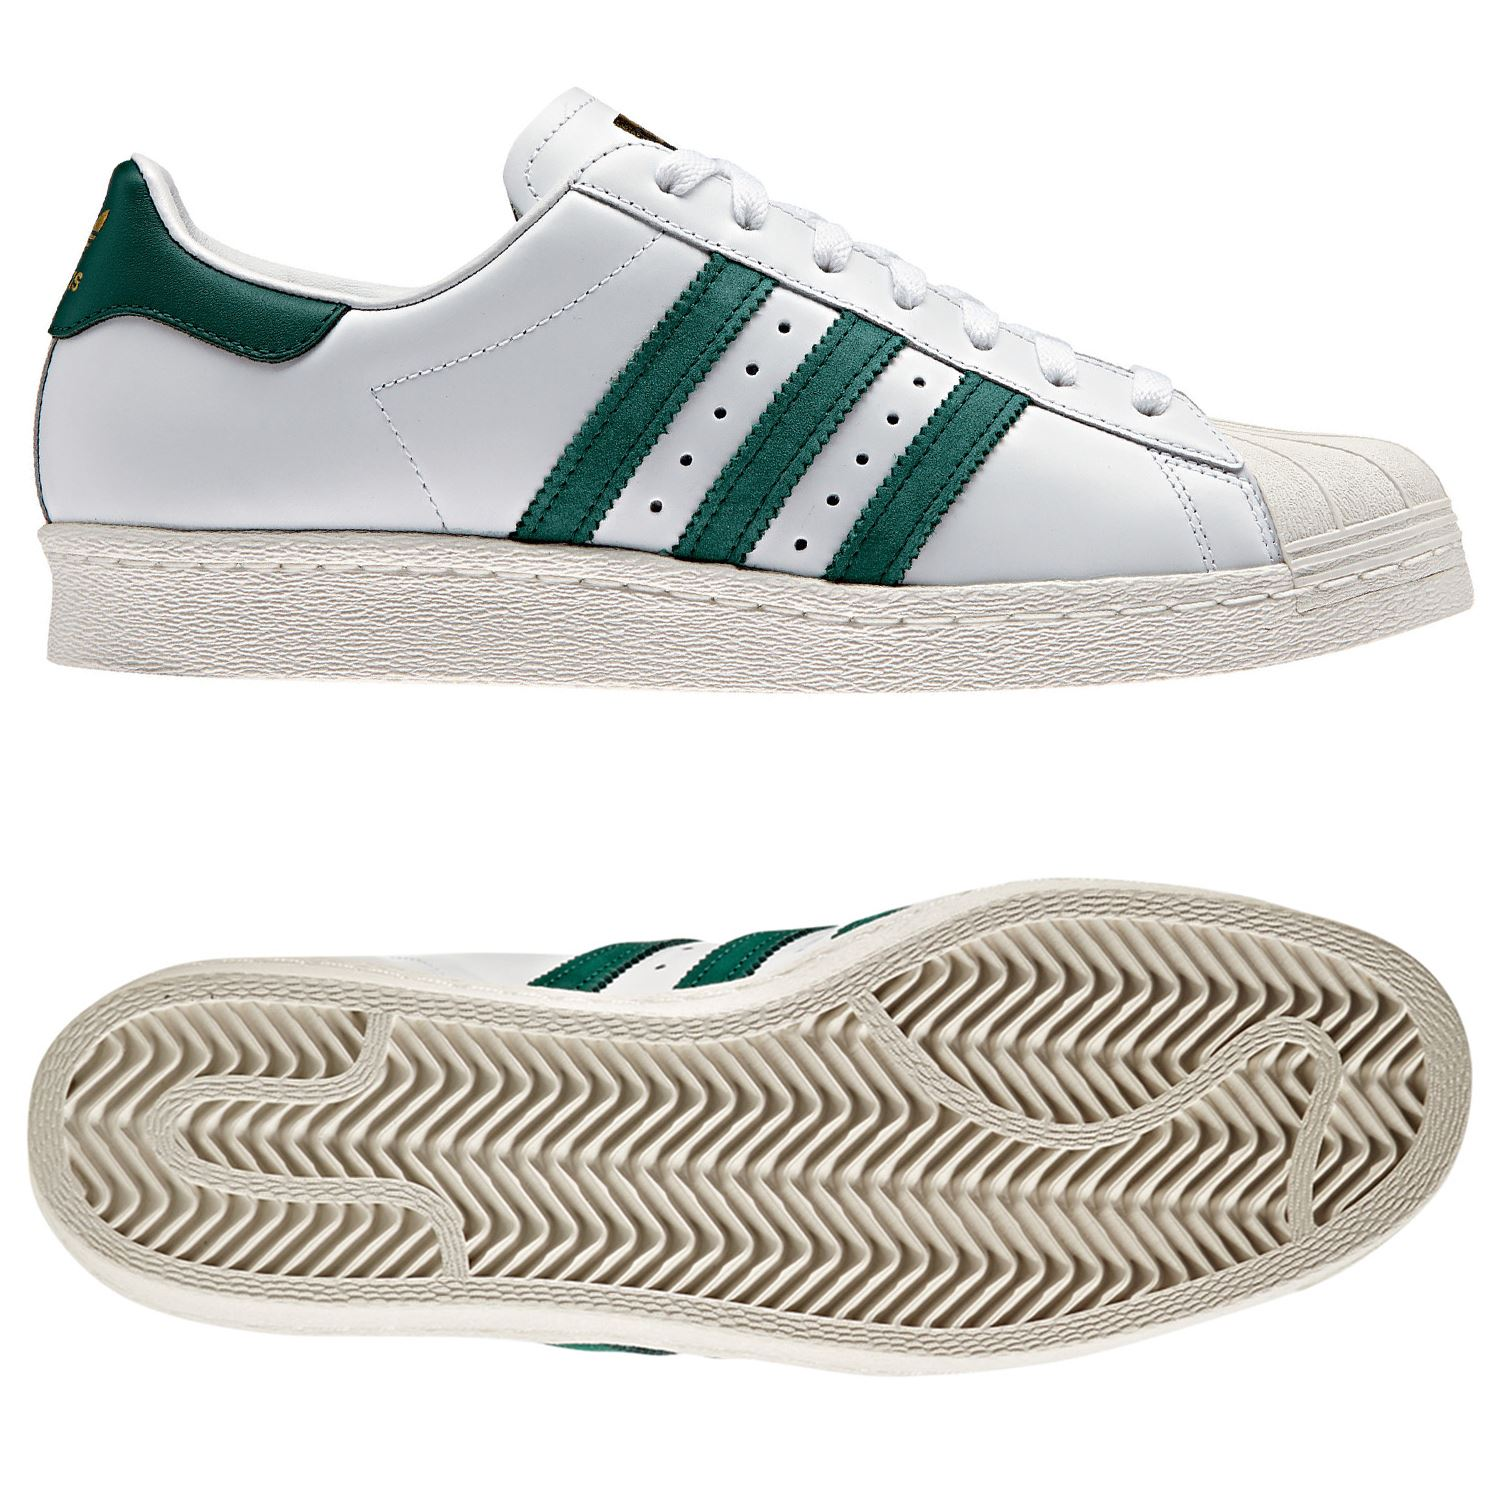 Adidas Originals Superstar 80s Trainers White Green Shoes Sneakers